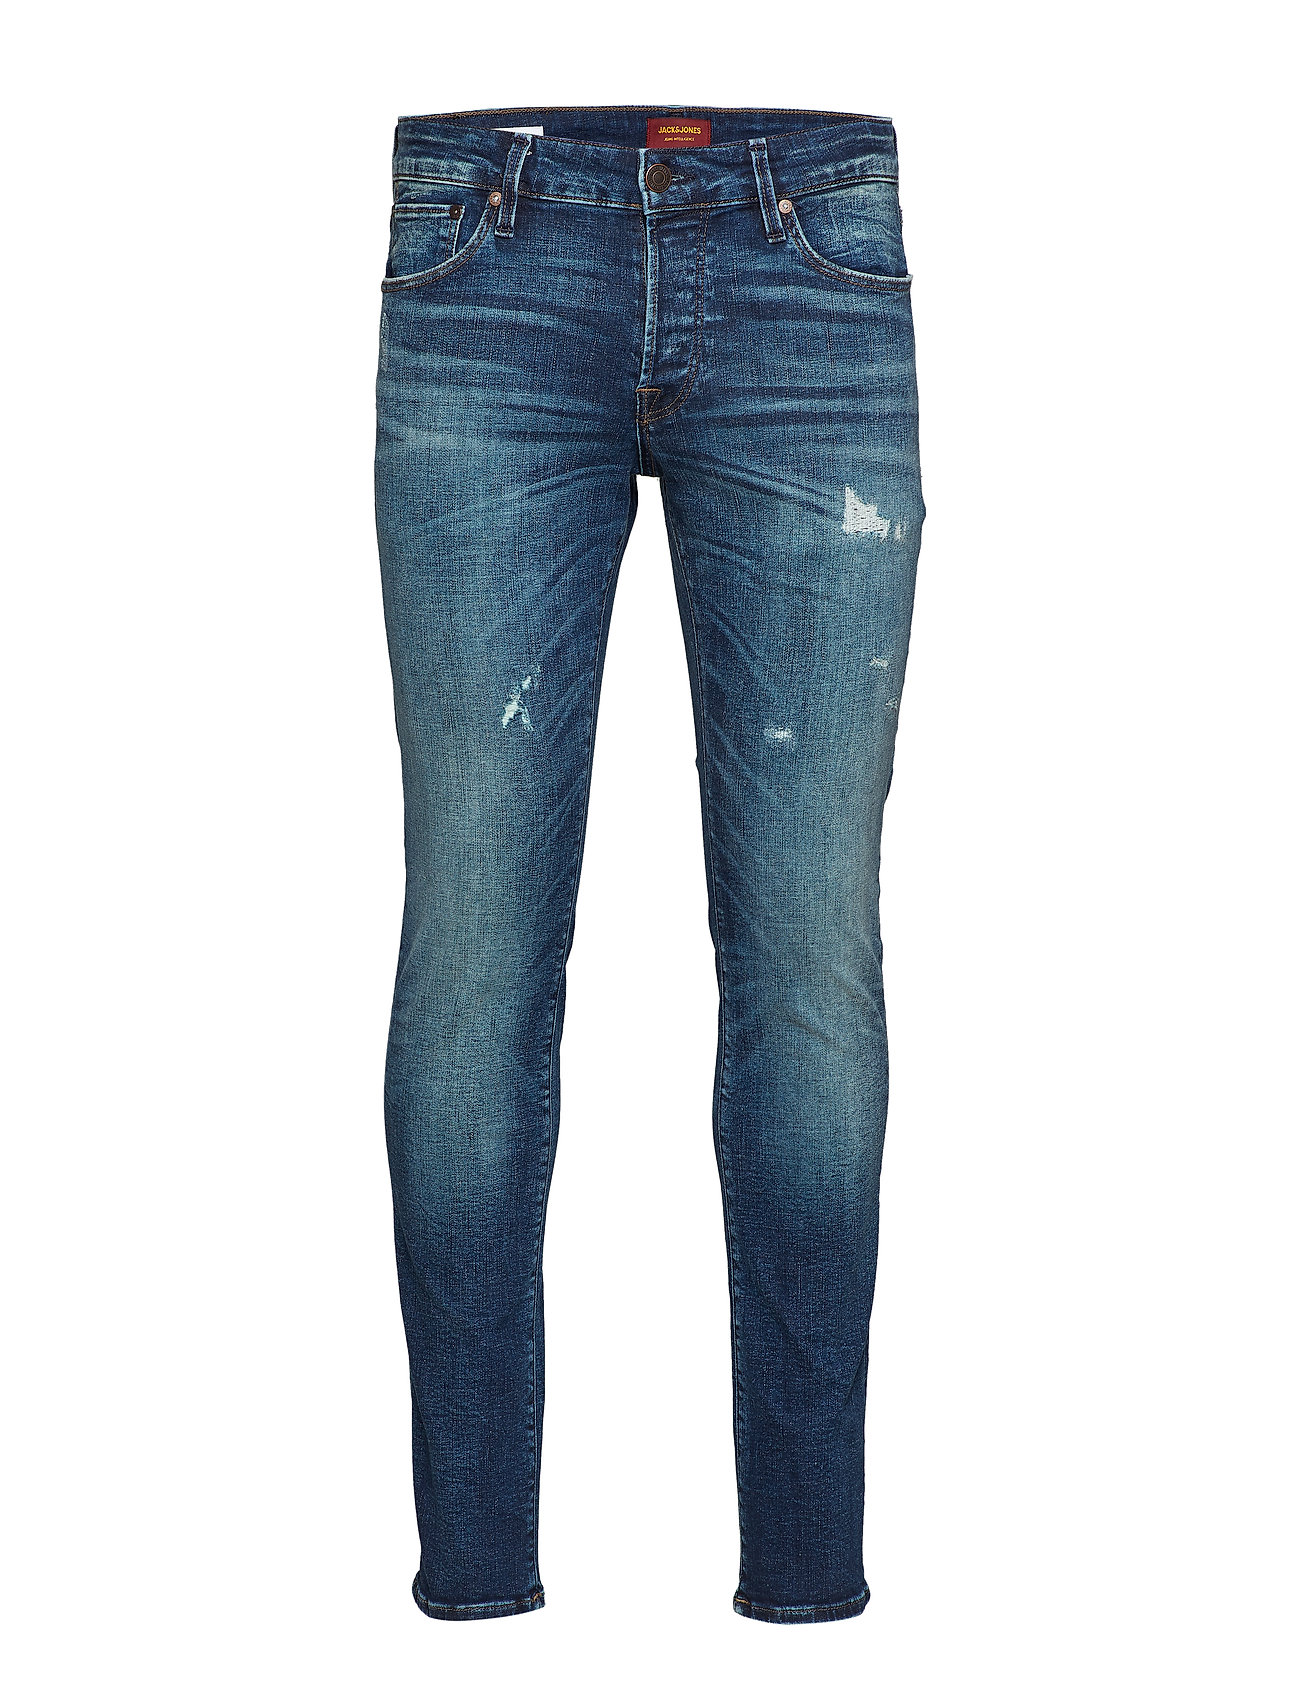 Jos Jjicon Noosblue 50sps Jjiglenn DenimJackamp; 424 Jones XZTPuwOkil